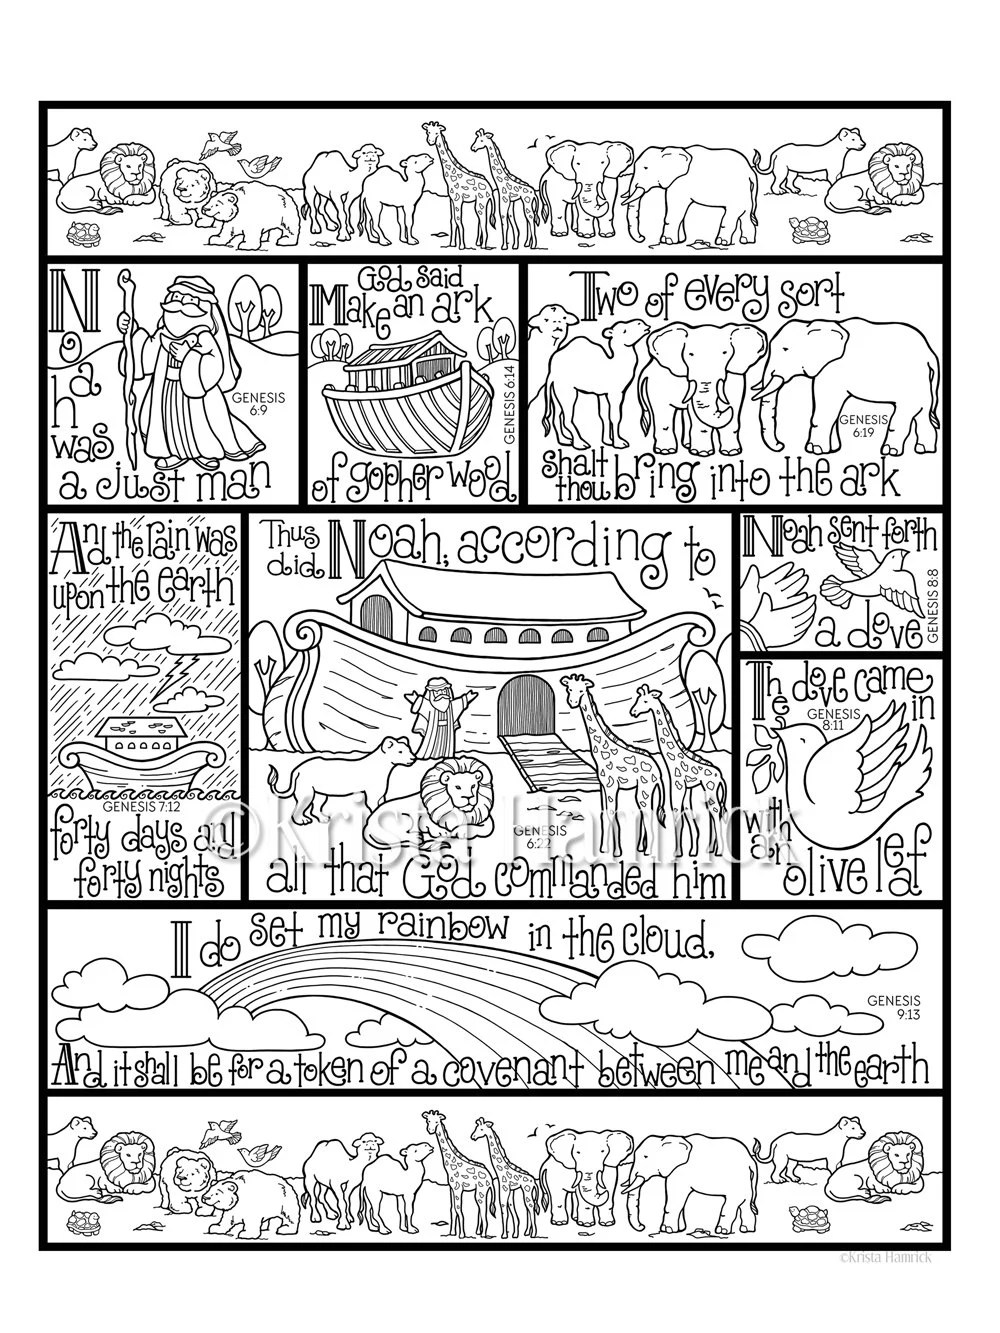 Noah's Ark Coloring Pages : noah's, coloring, pages, Noah's, Coloring, Three, Sizes:, 8.5X11